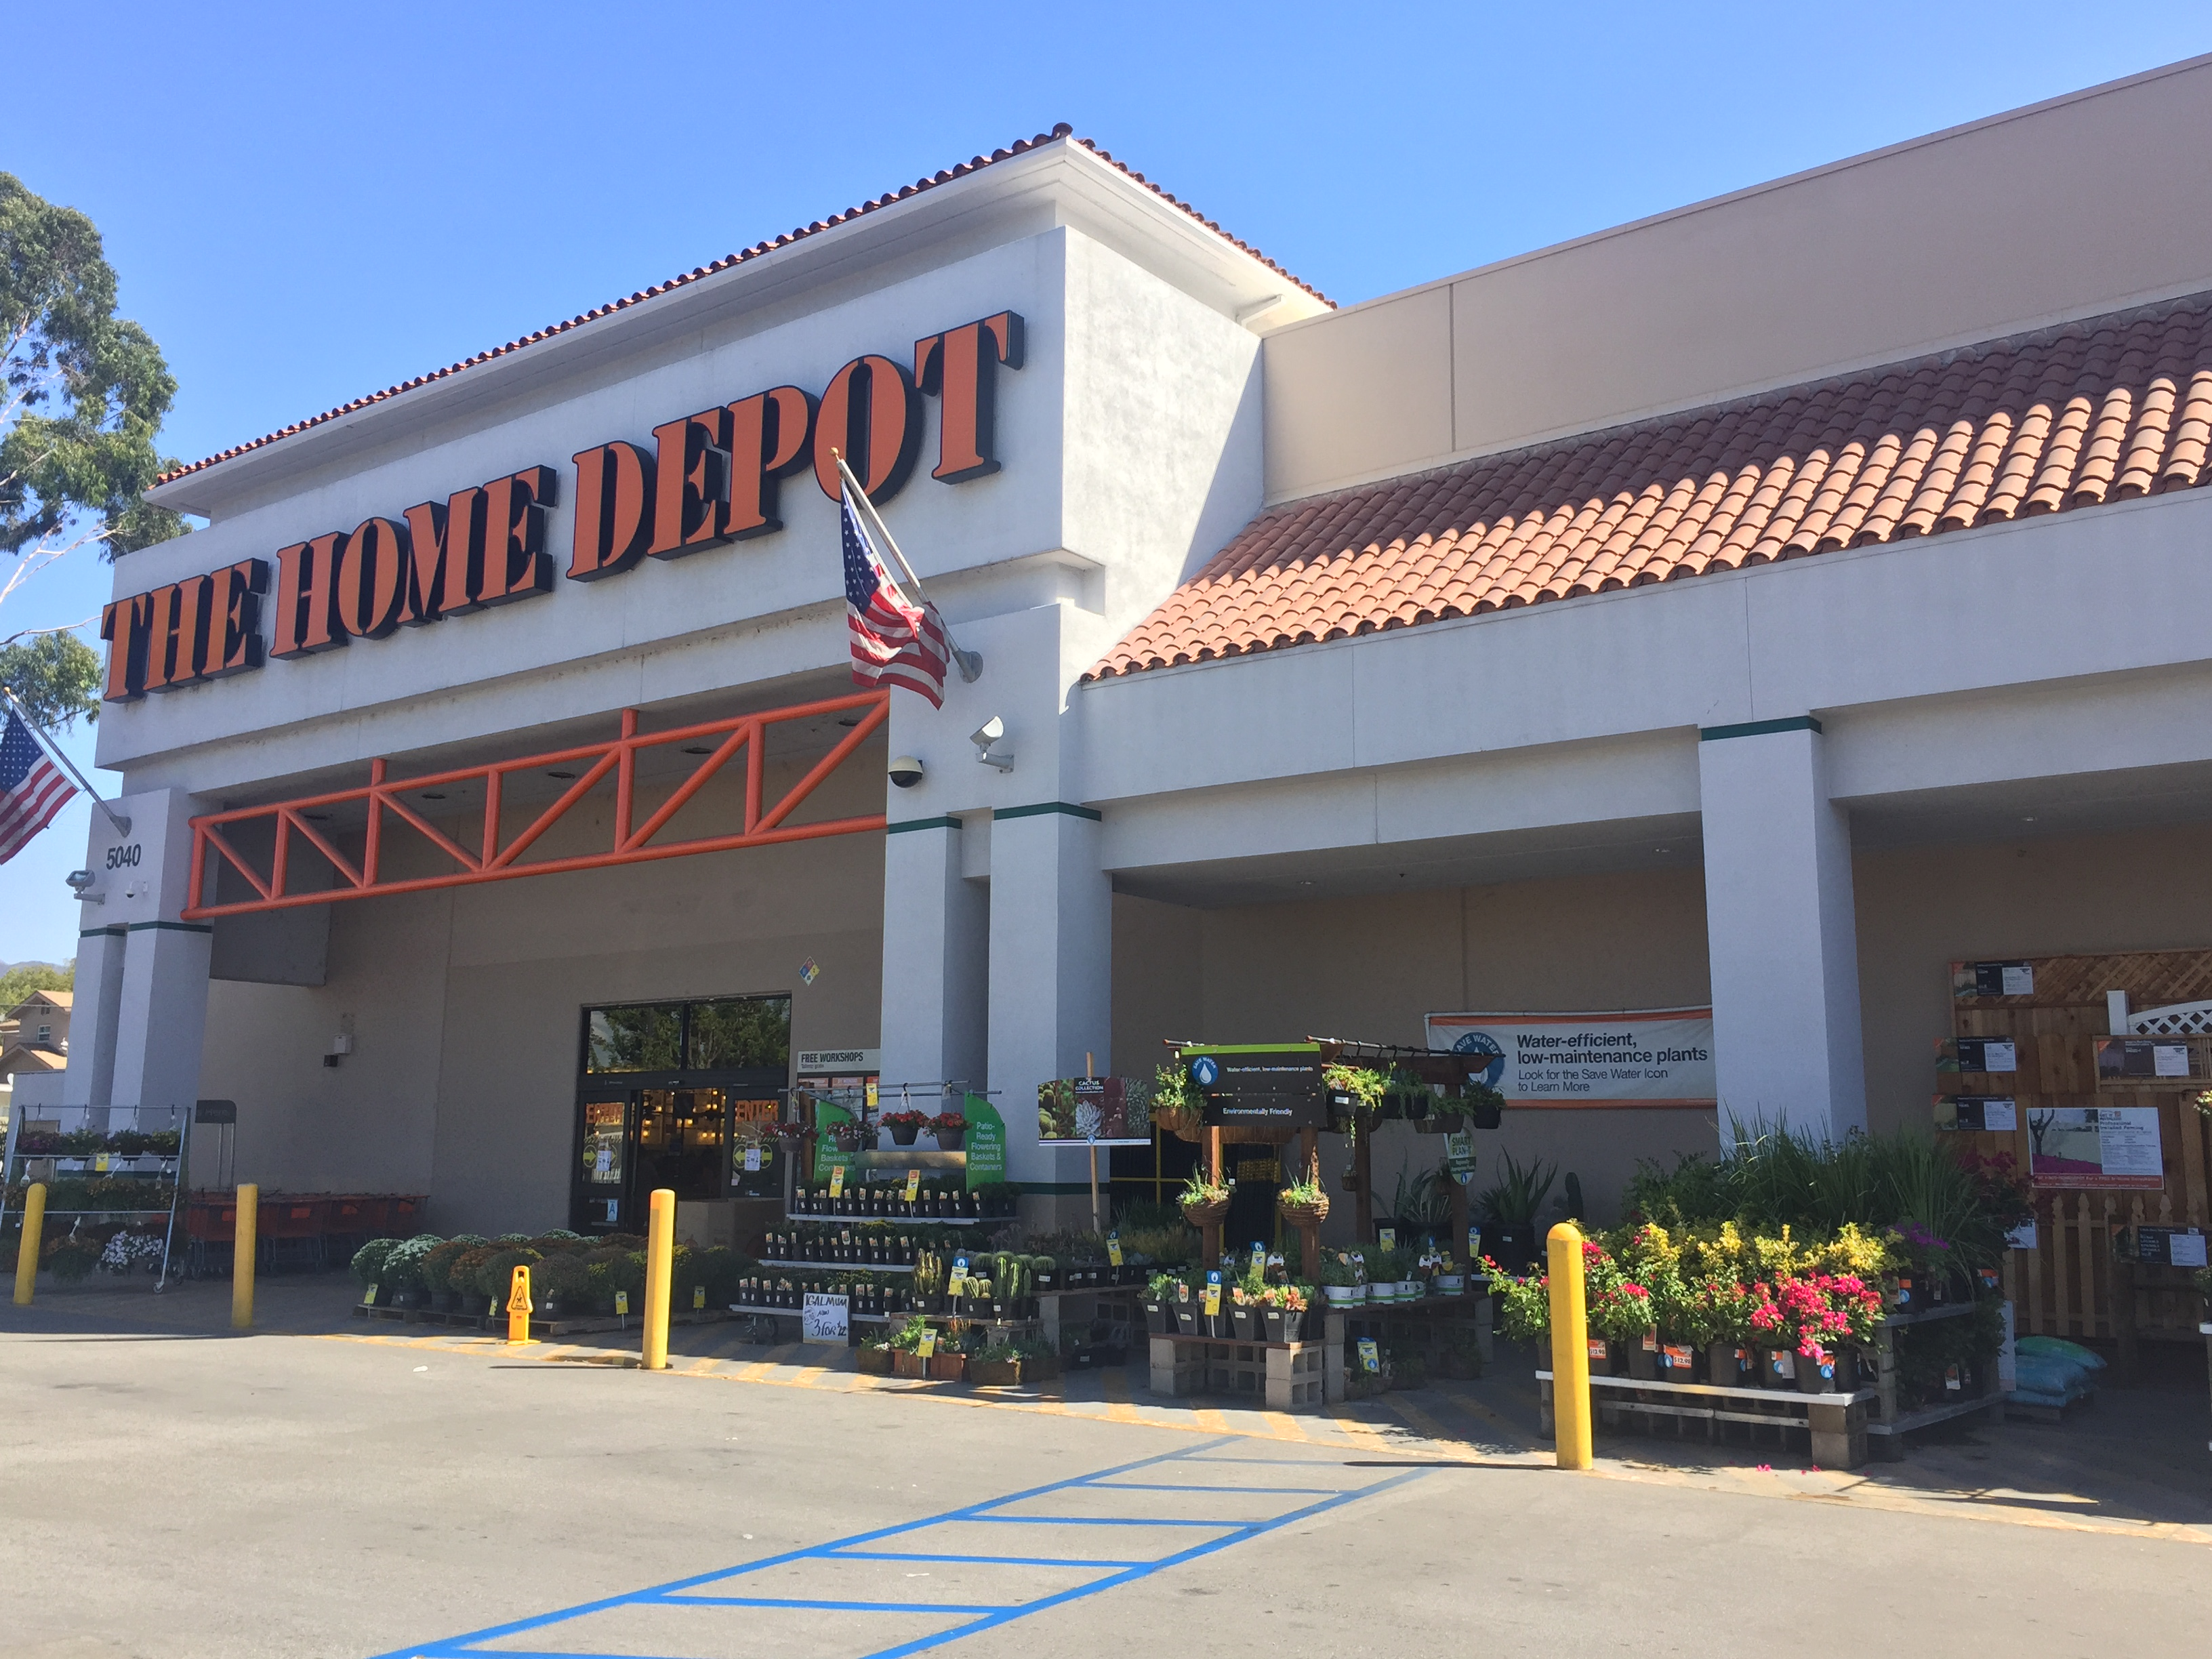 The Home Depot 5040 San Fernando Rd Glendale, CA Hardware Stores   MapQuest